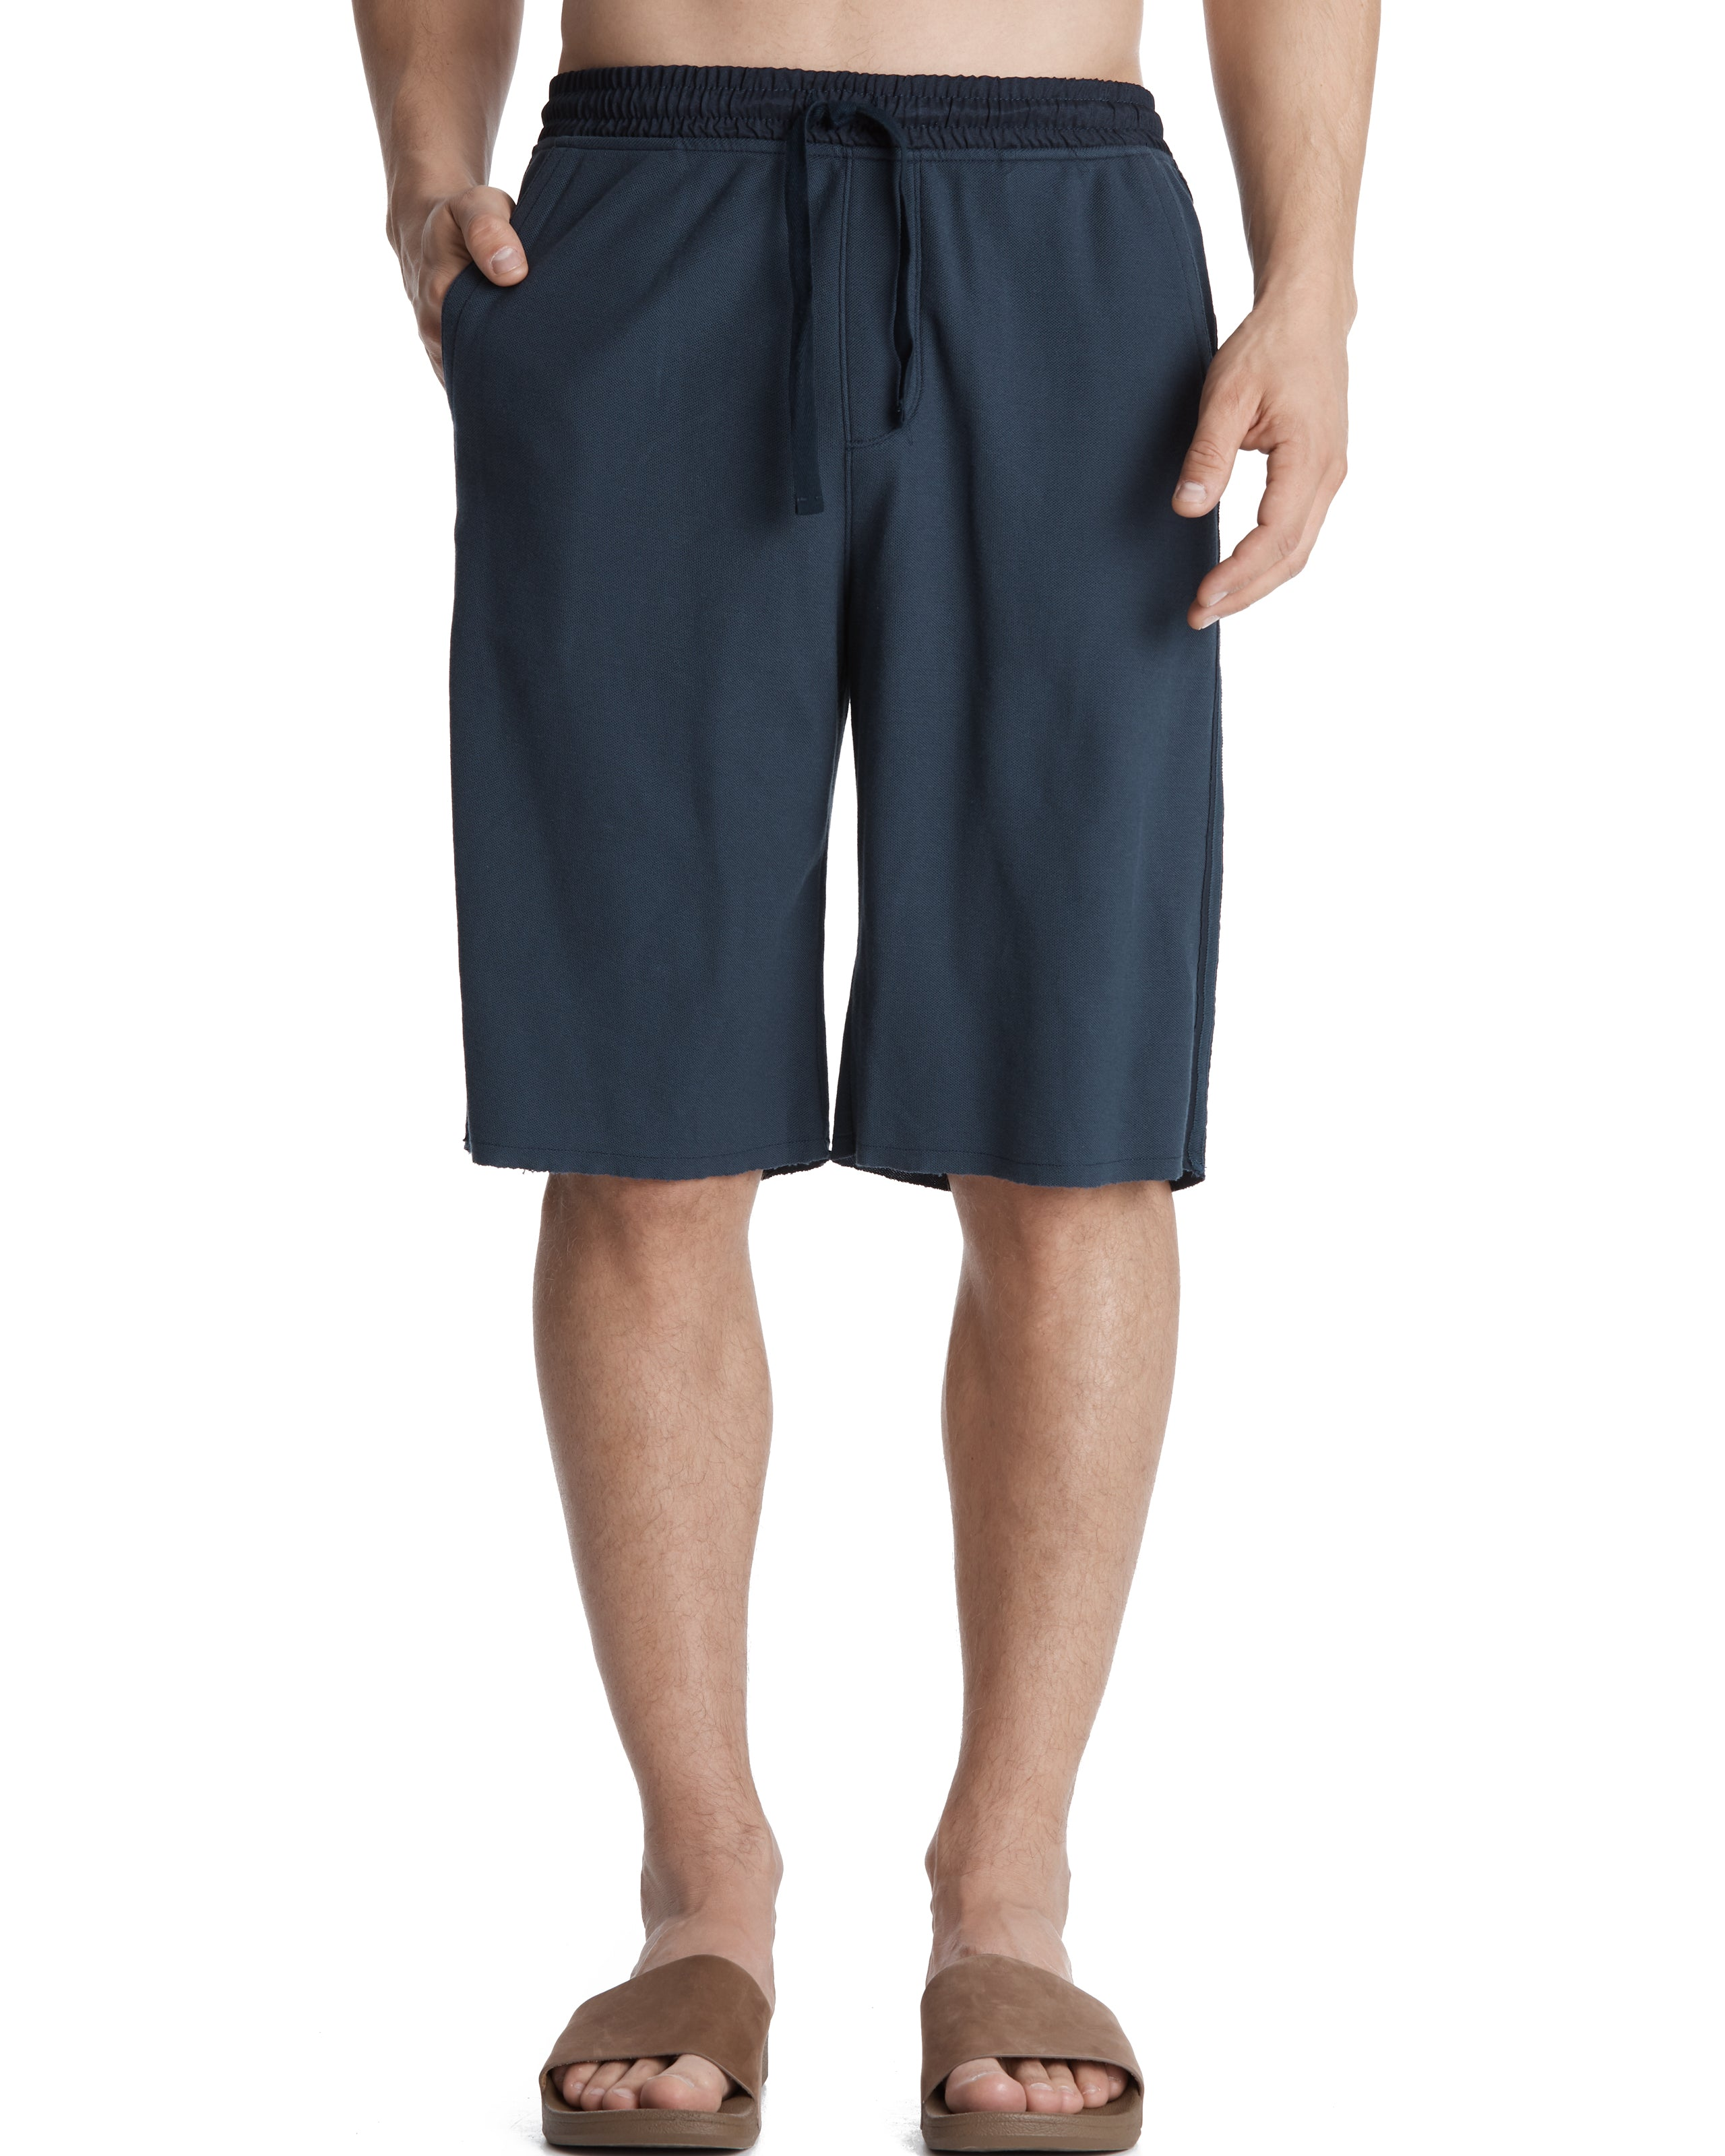 ATM Pique Pull-On Shorts